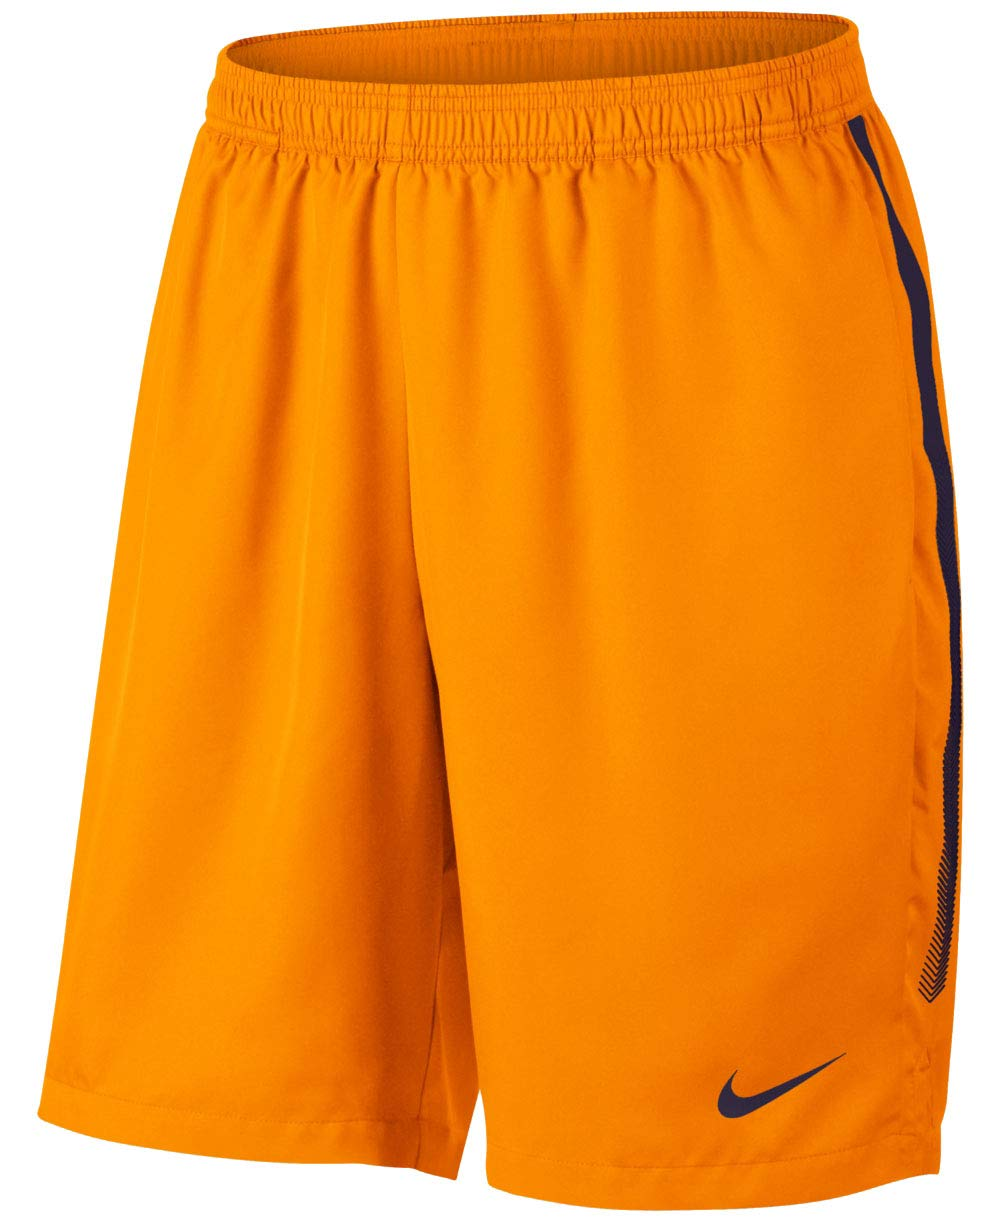 Nike Men's Court Dry 9'' Short (Orange Peel/Blackened Blue, Small)